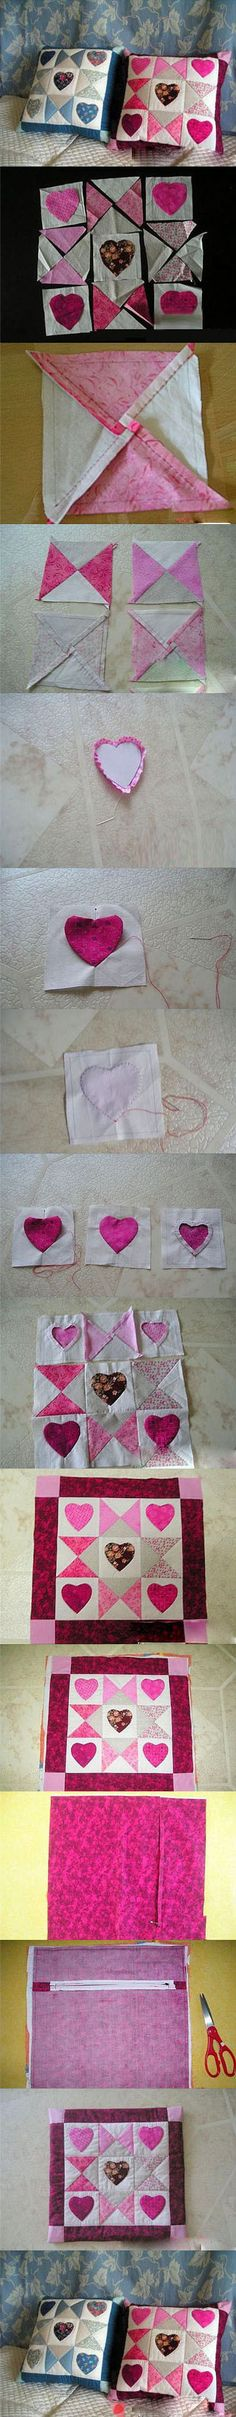 Beautiful cushion tutorial